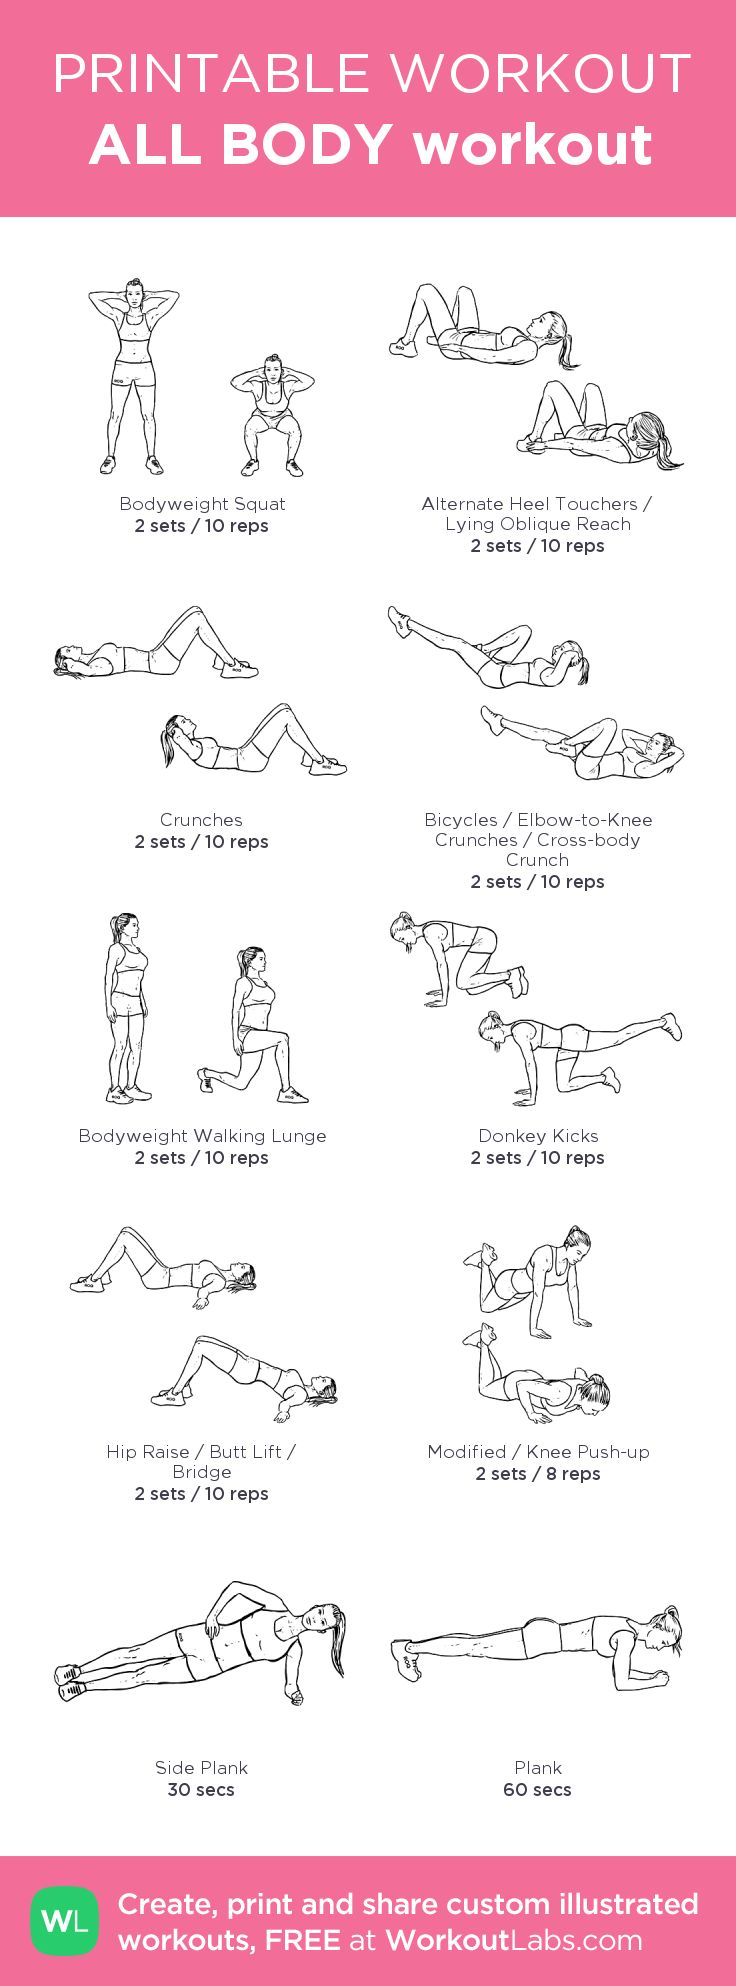 ALL BODY workout:my visual workout created at WorkoutLabs.com • Click through to customize and download as a FREE PDF! #customworkout